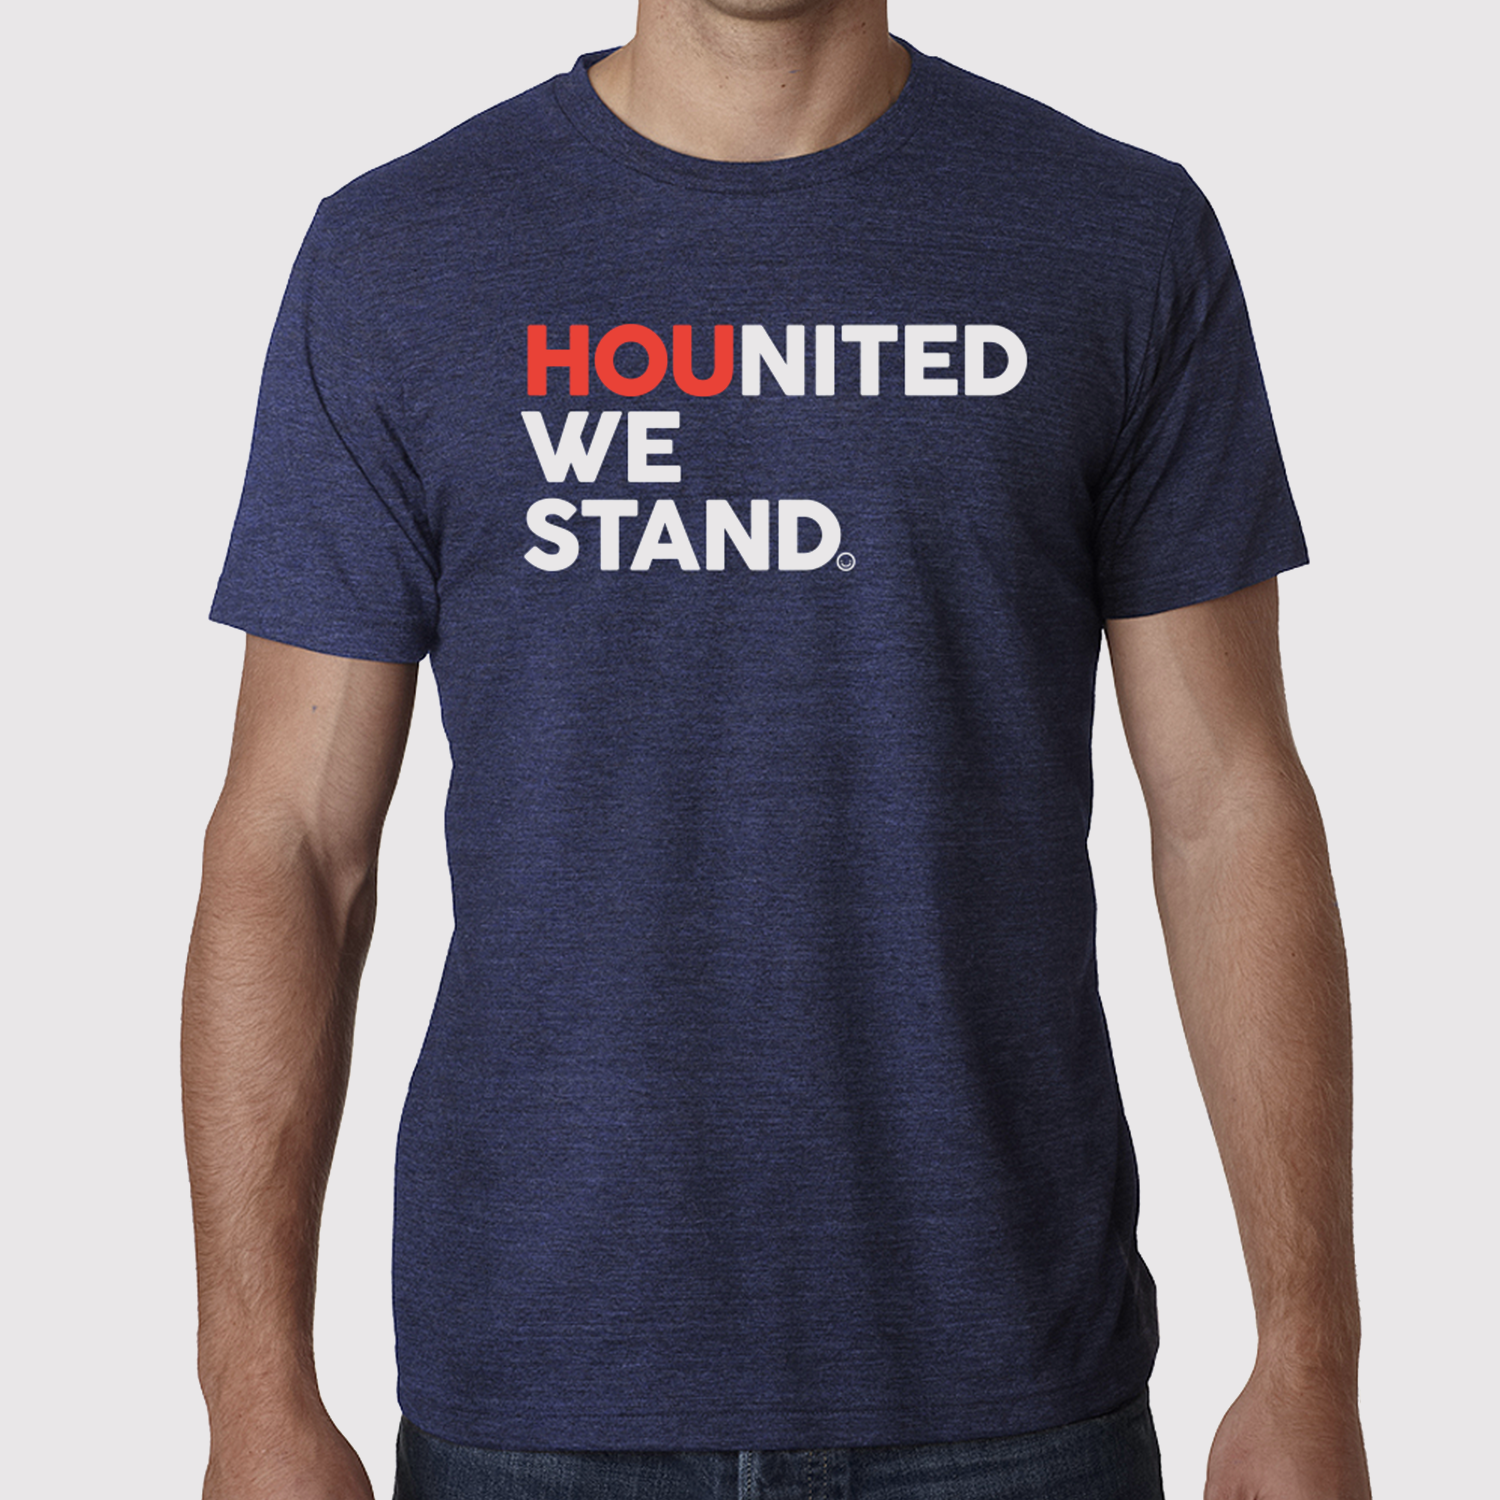 HappyBombs-HounitedWeStand-Blue-MensNew.png